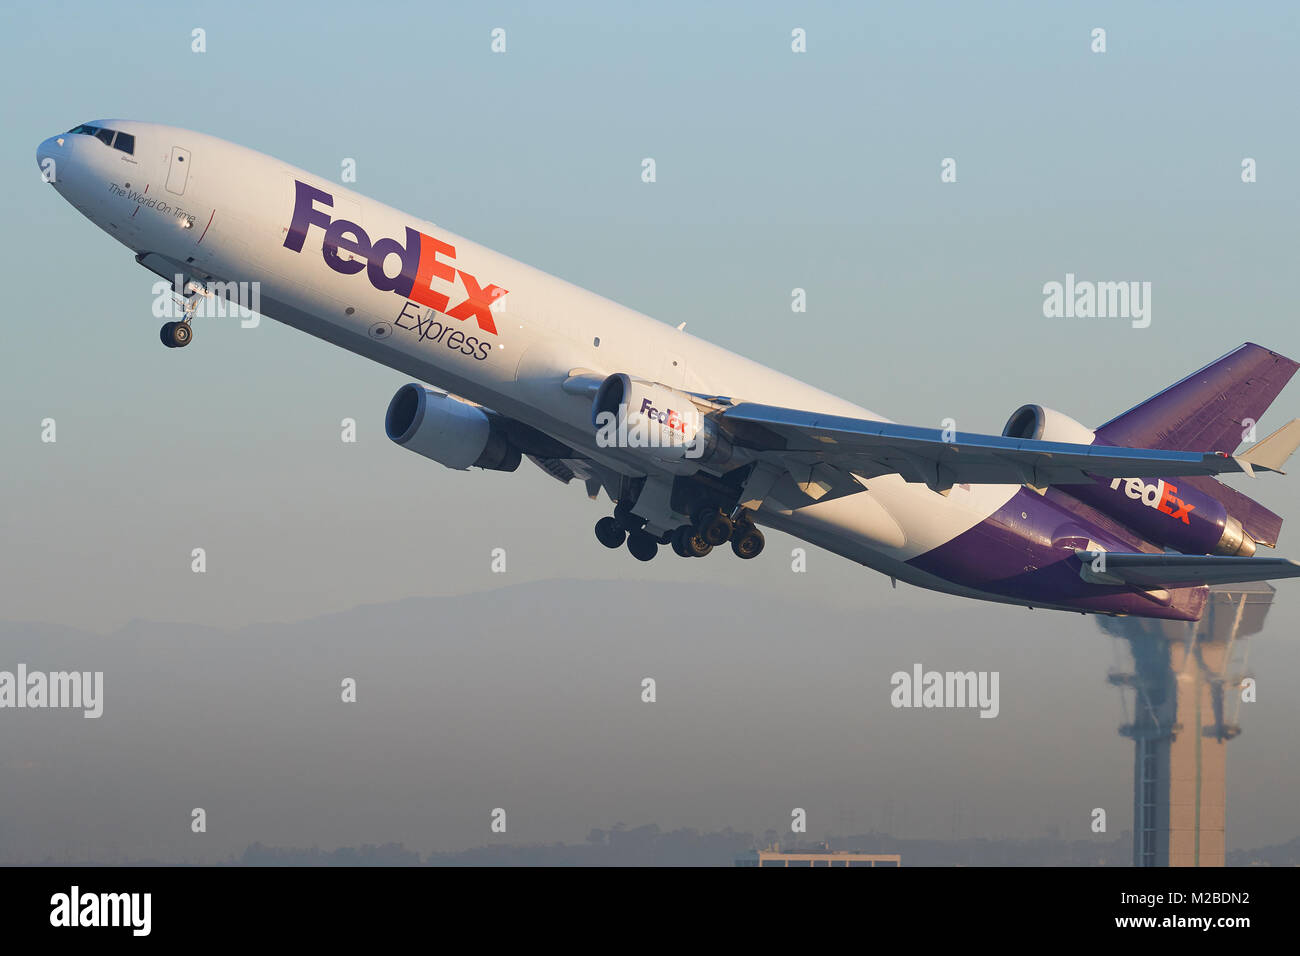 fedral express Federal express (fedex) (iata: fx / icao: fdx) is an airline based in memphis, united states founded in 1971 currently operating a fleet of 440 aircraft.